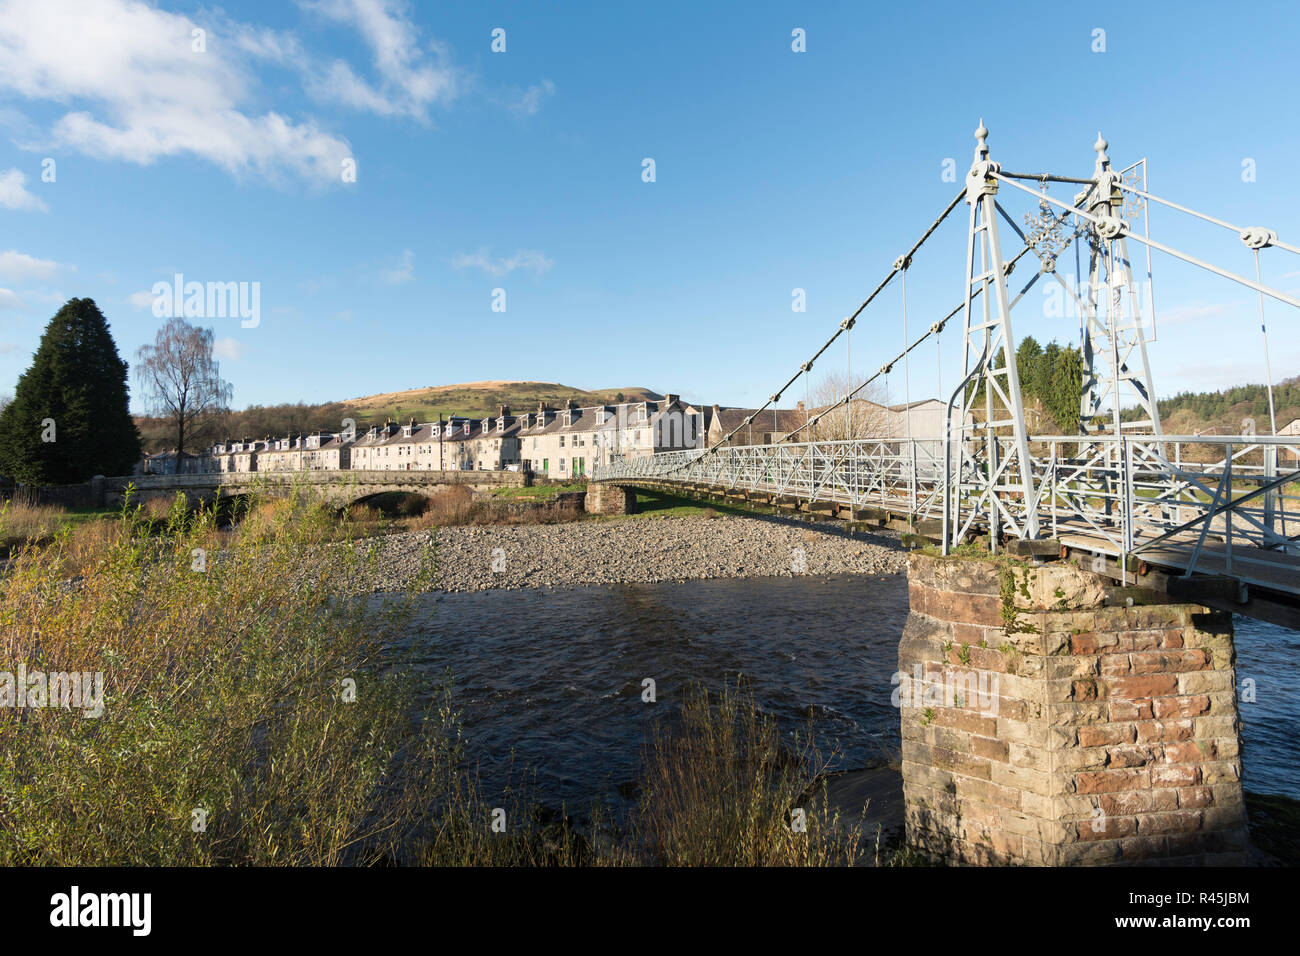 The listed Victorian suspension footbridge, the Boatford Bridge, over the river Esk, Langholm, Dumfries and Galloway, Scotland, UK - Stock Image